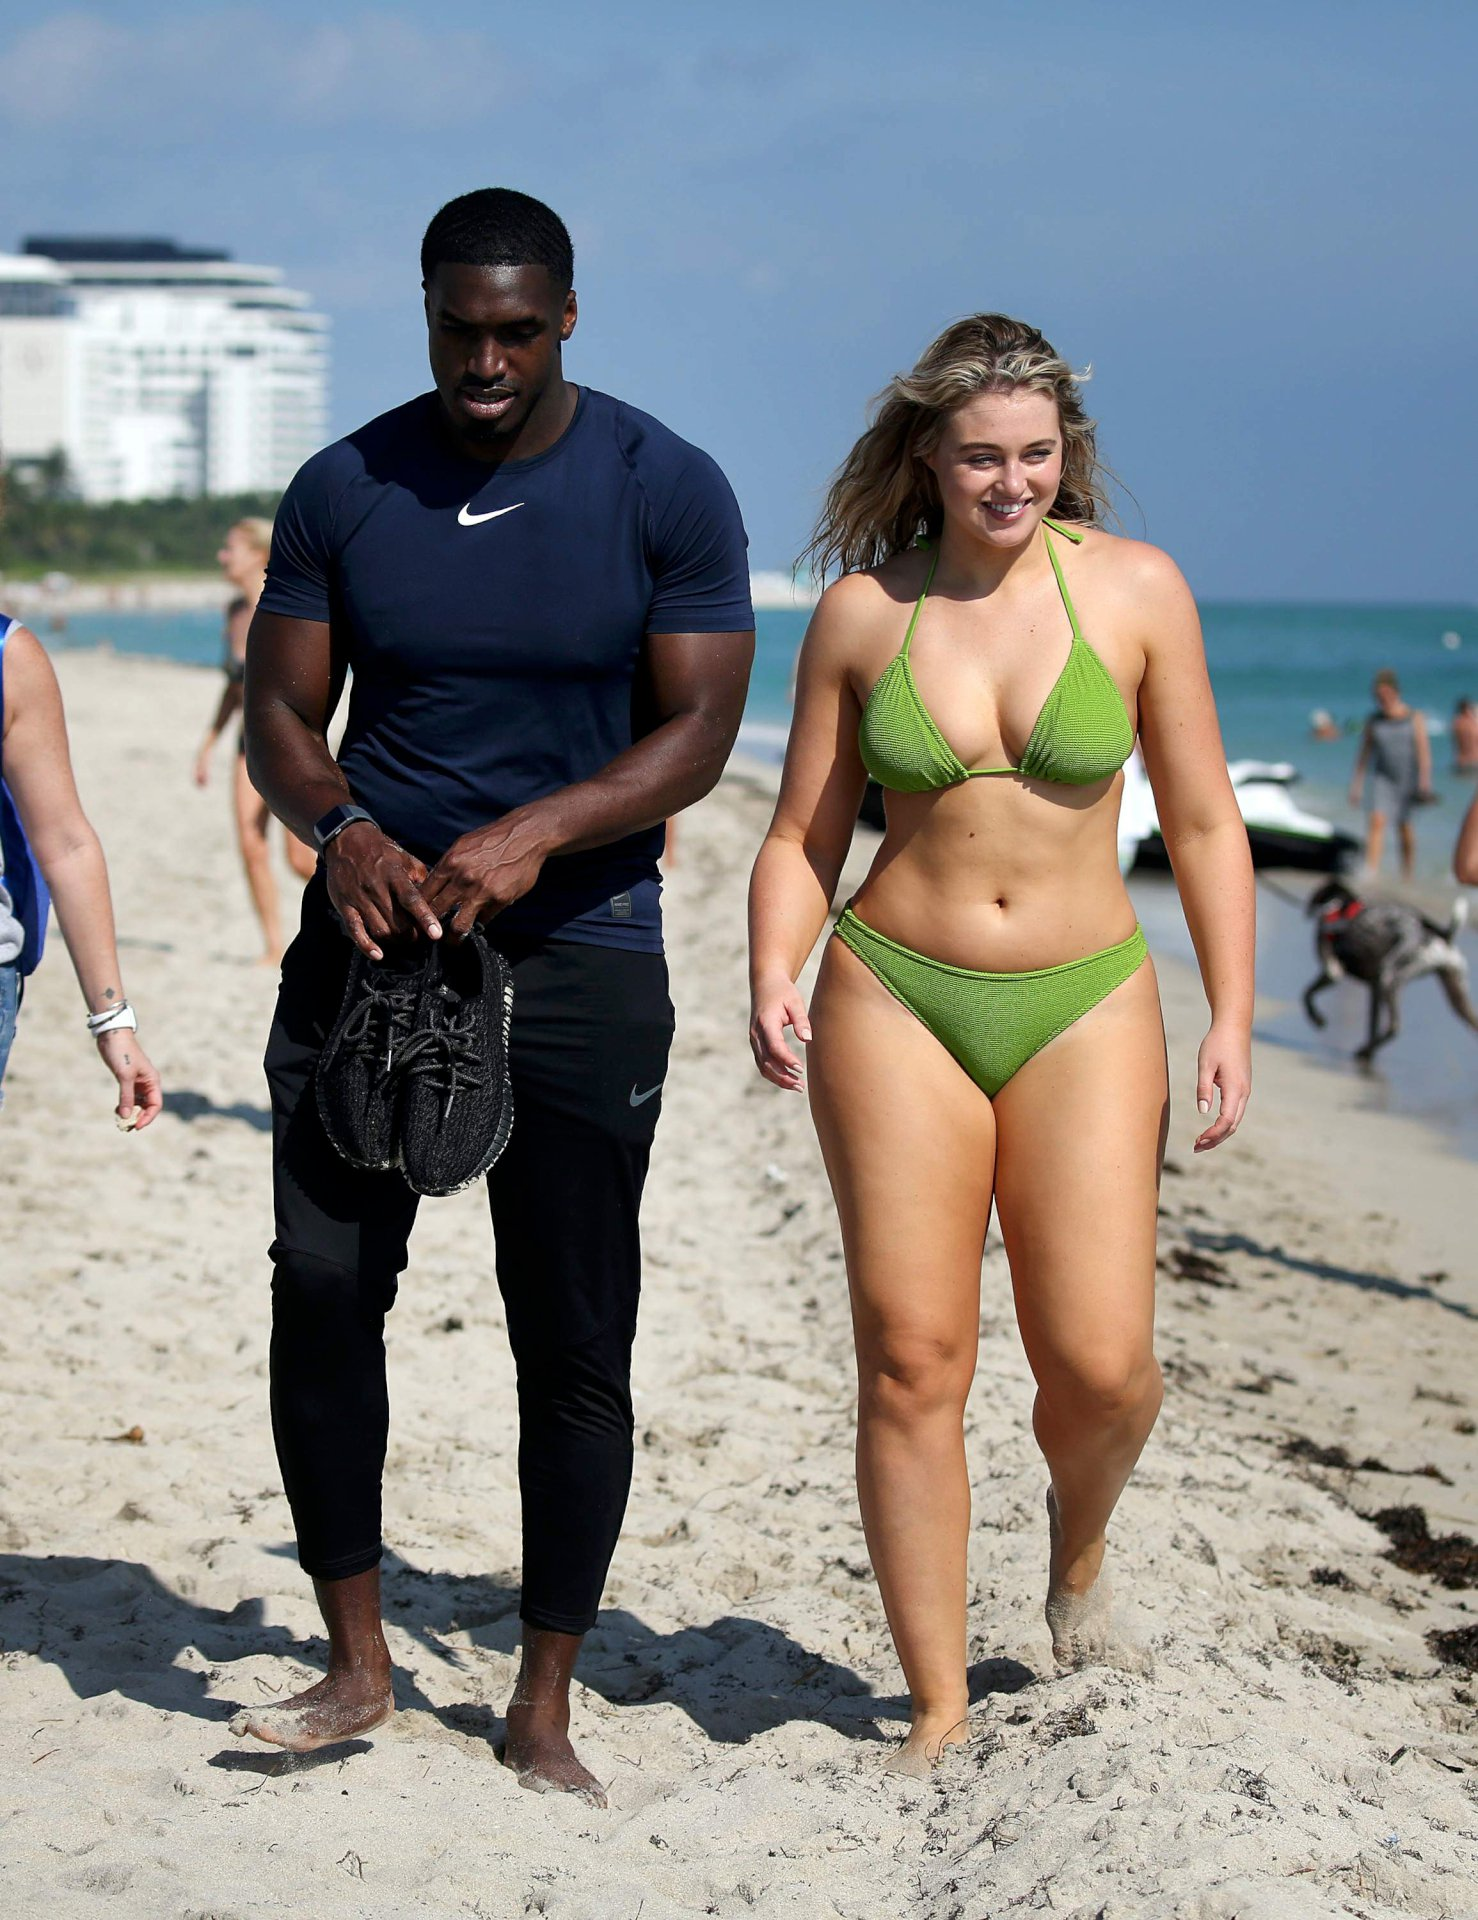 Iskra Lawrence Sexy Photoshoot At Beach   Hot Celebs Home